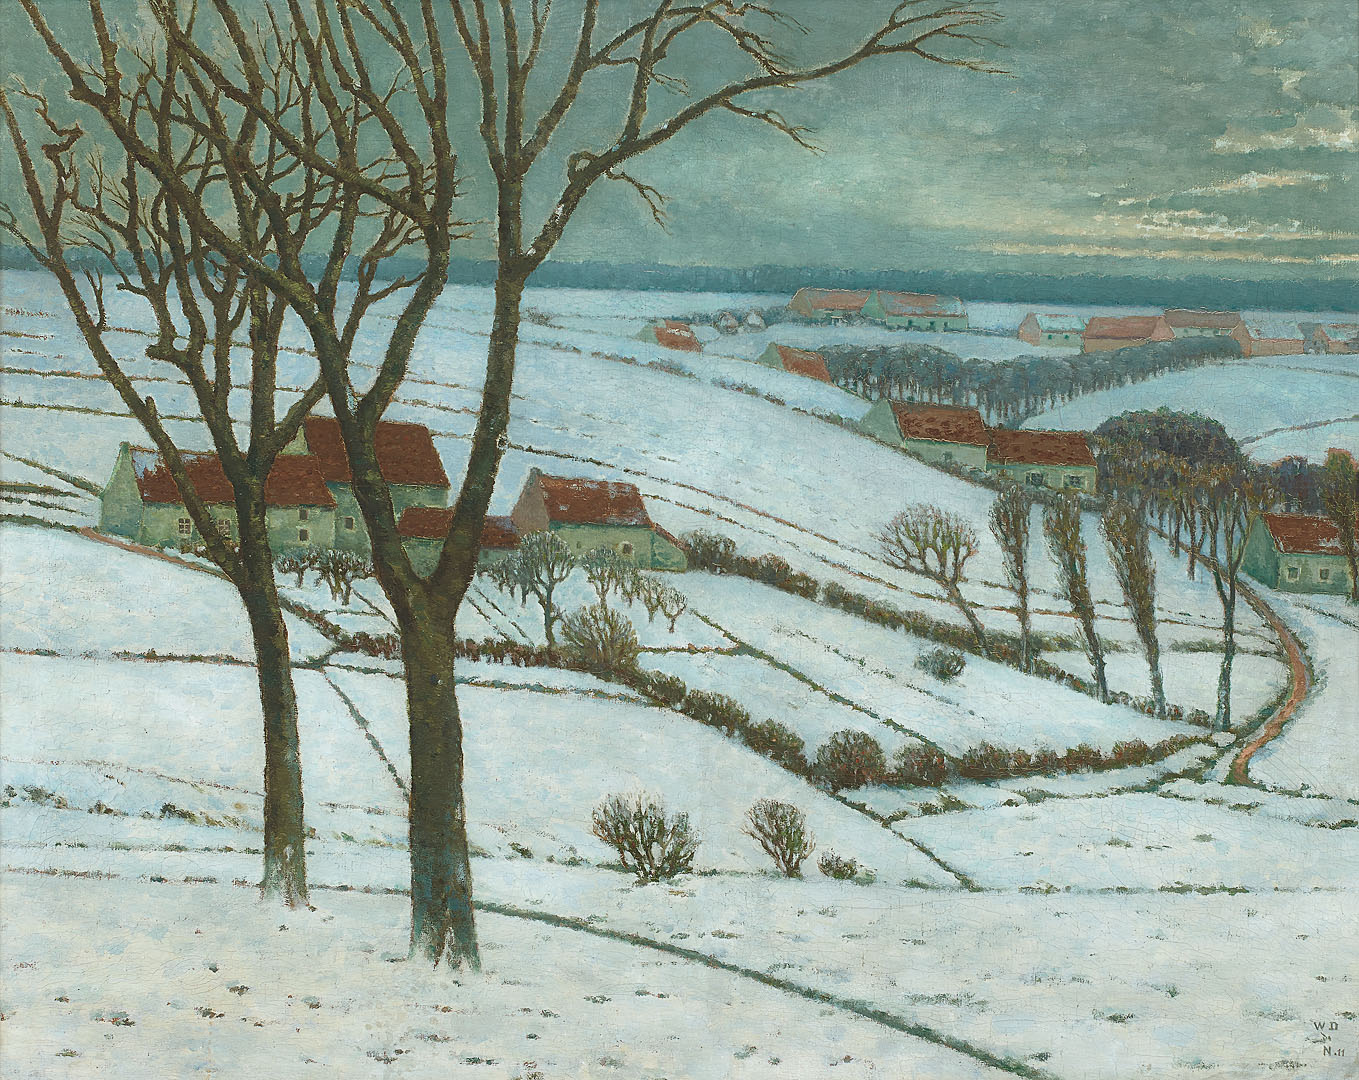 Brabant in sneeuw, 1911 William Degouve de Nuncques (1867-1935) - Kunsthandel Studio 2000